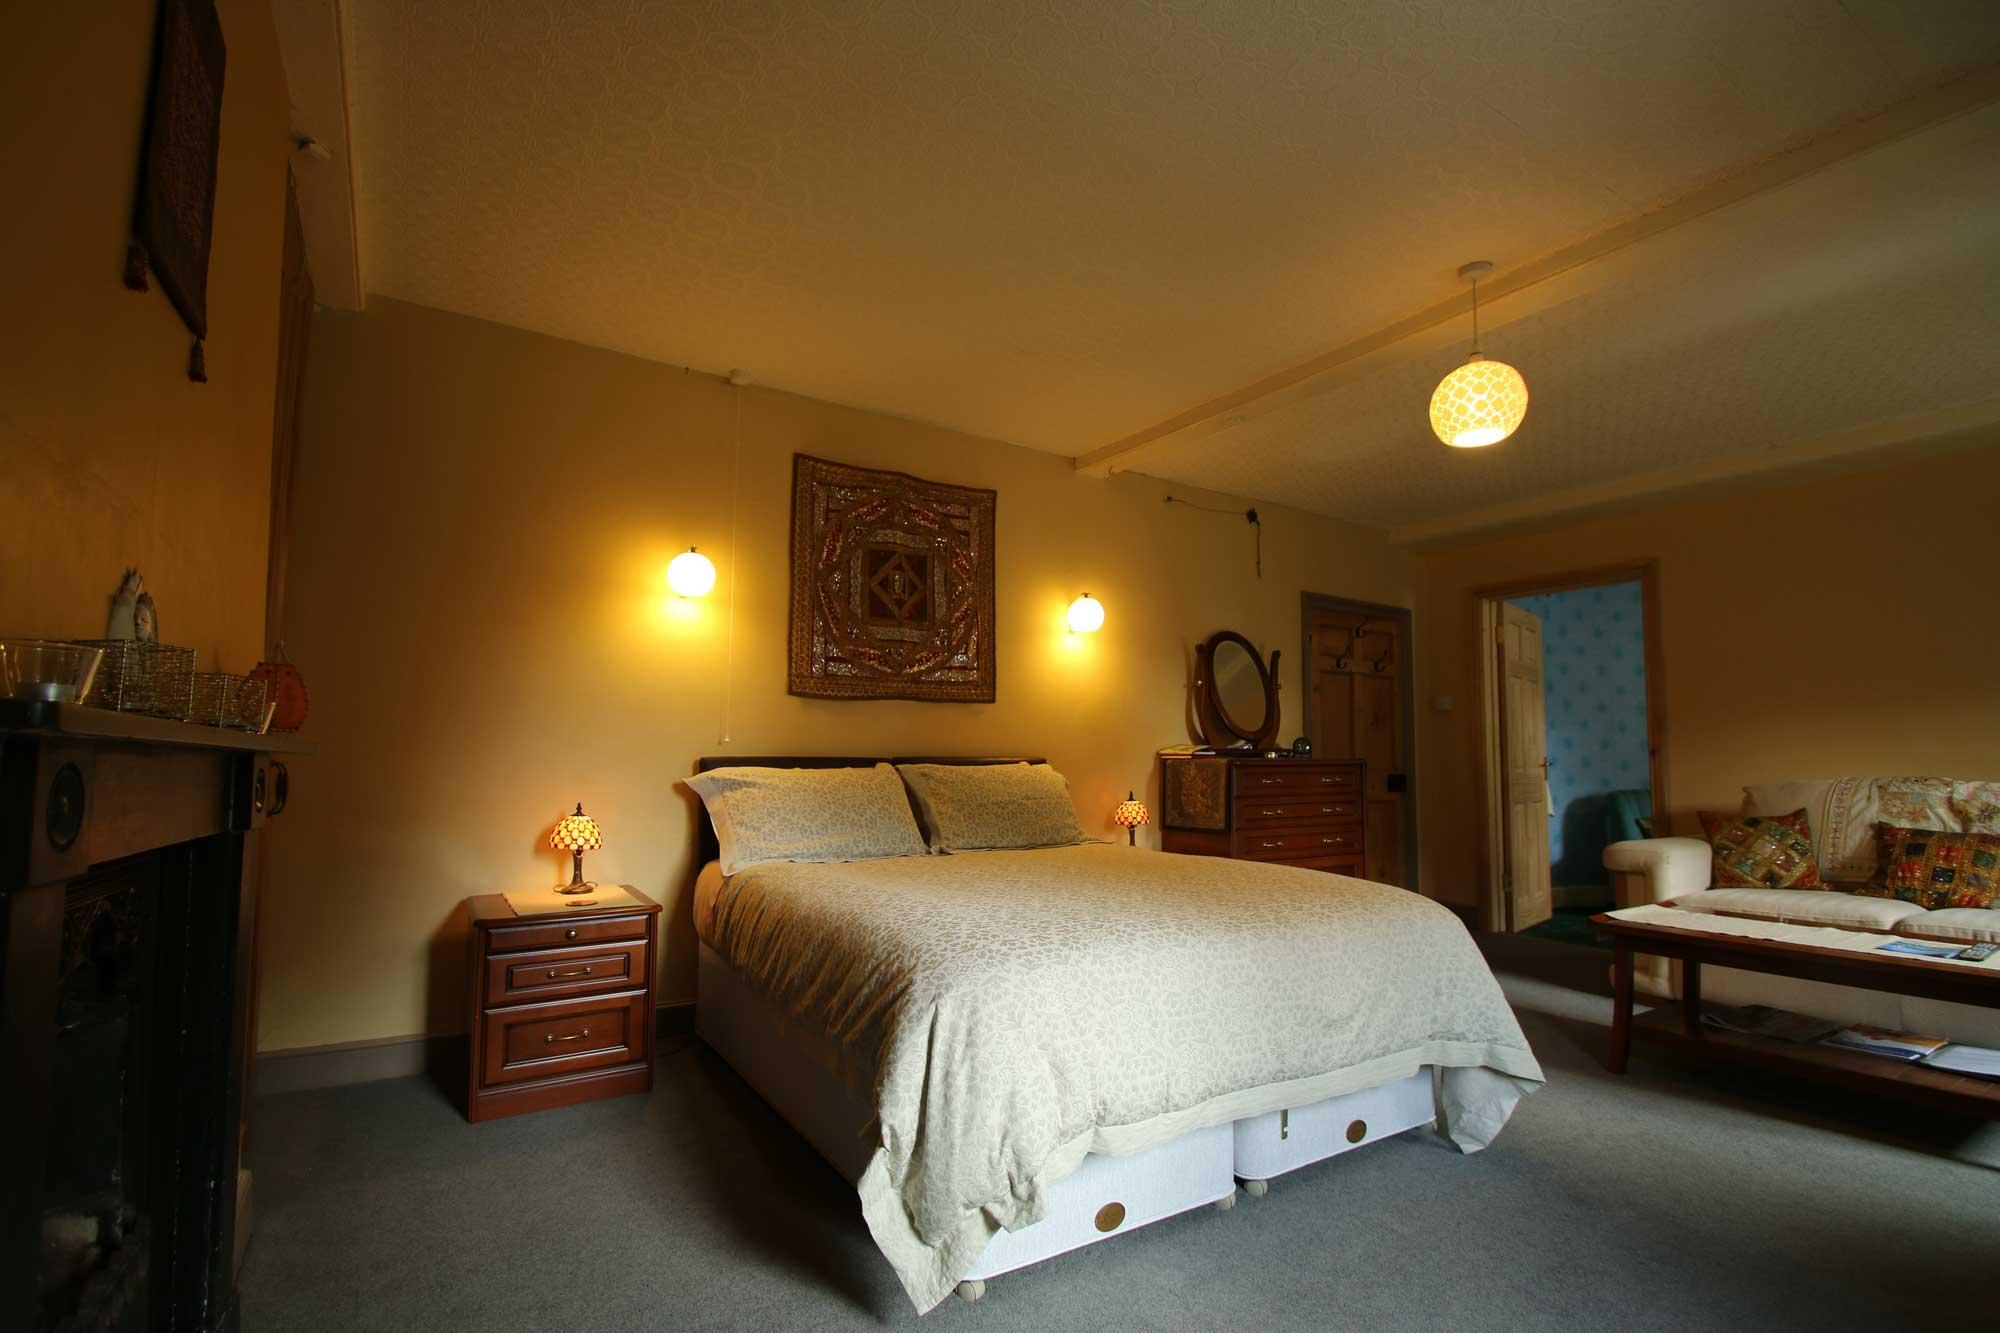 Parvati Twin or Double room at Over the Rainbow